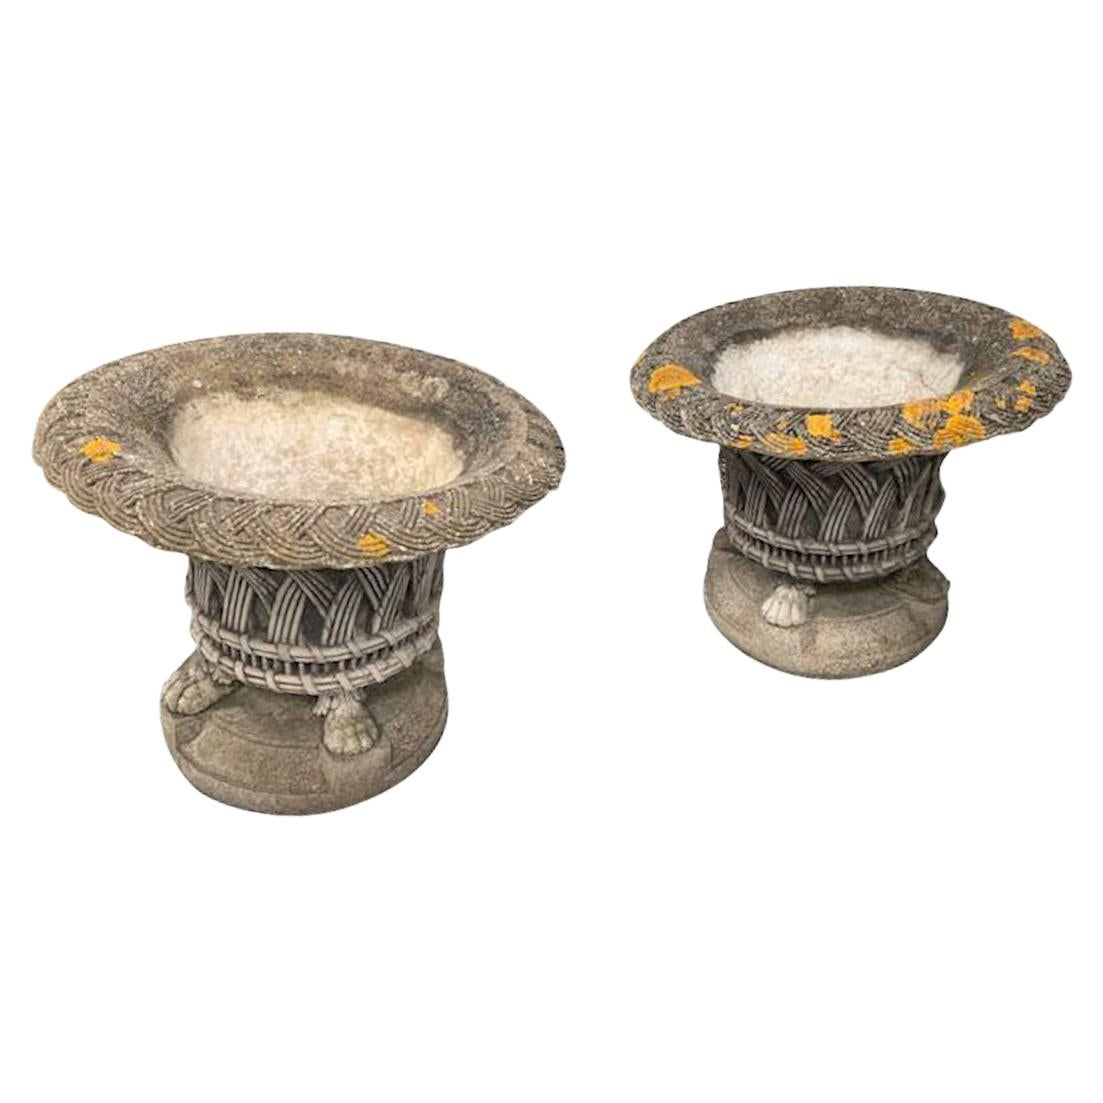 Pair of Basket Weave Stone Planters, England, 1930s